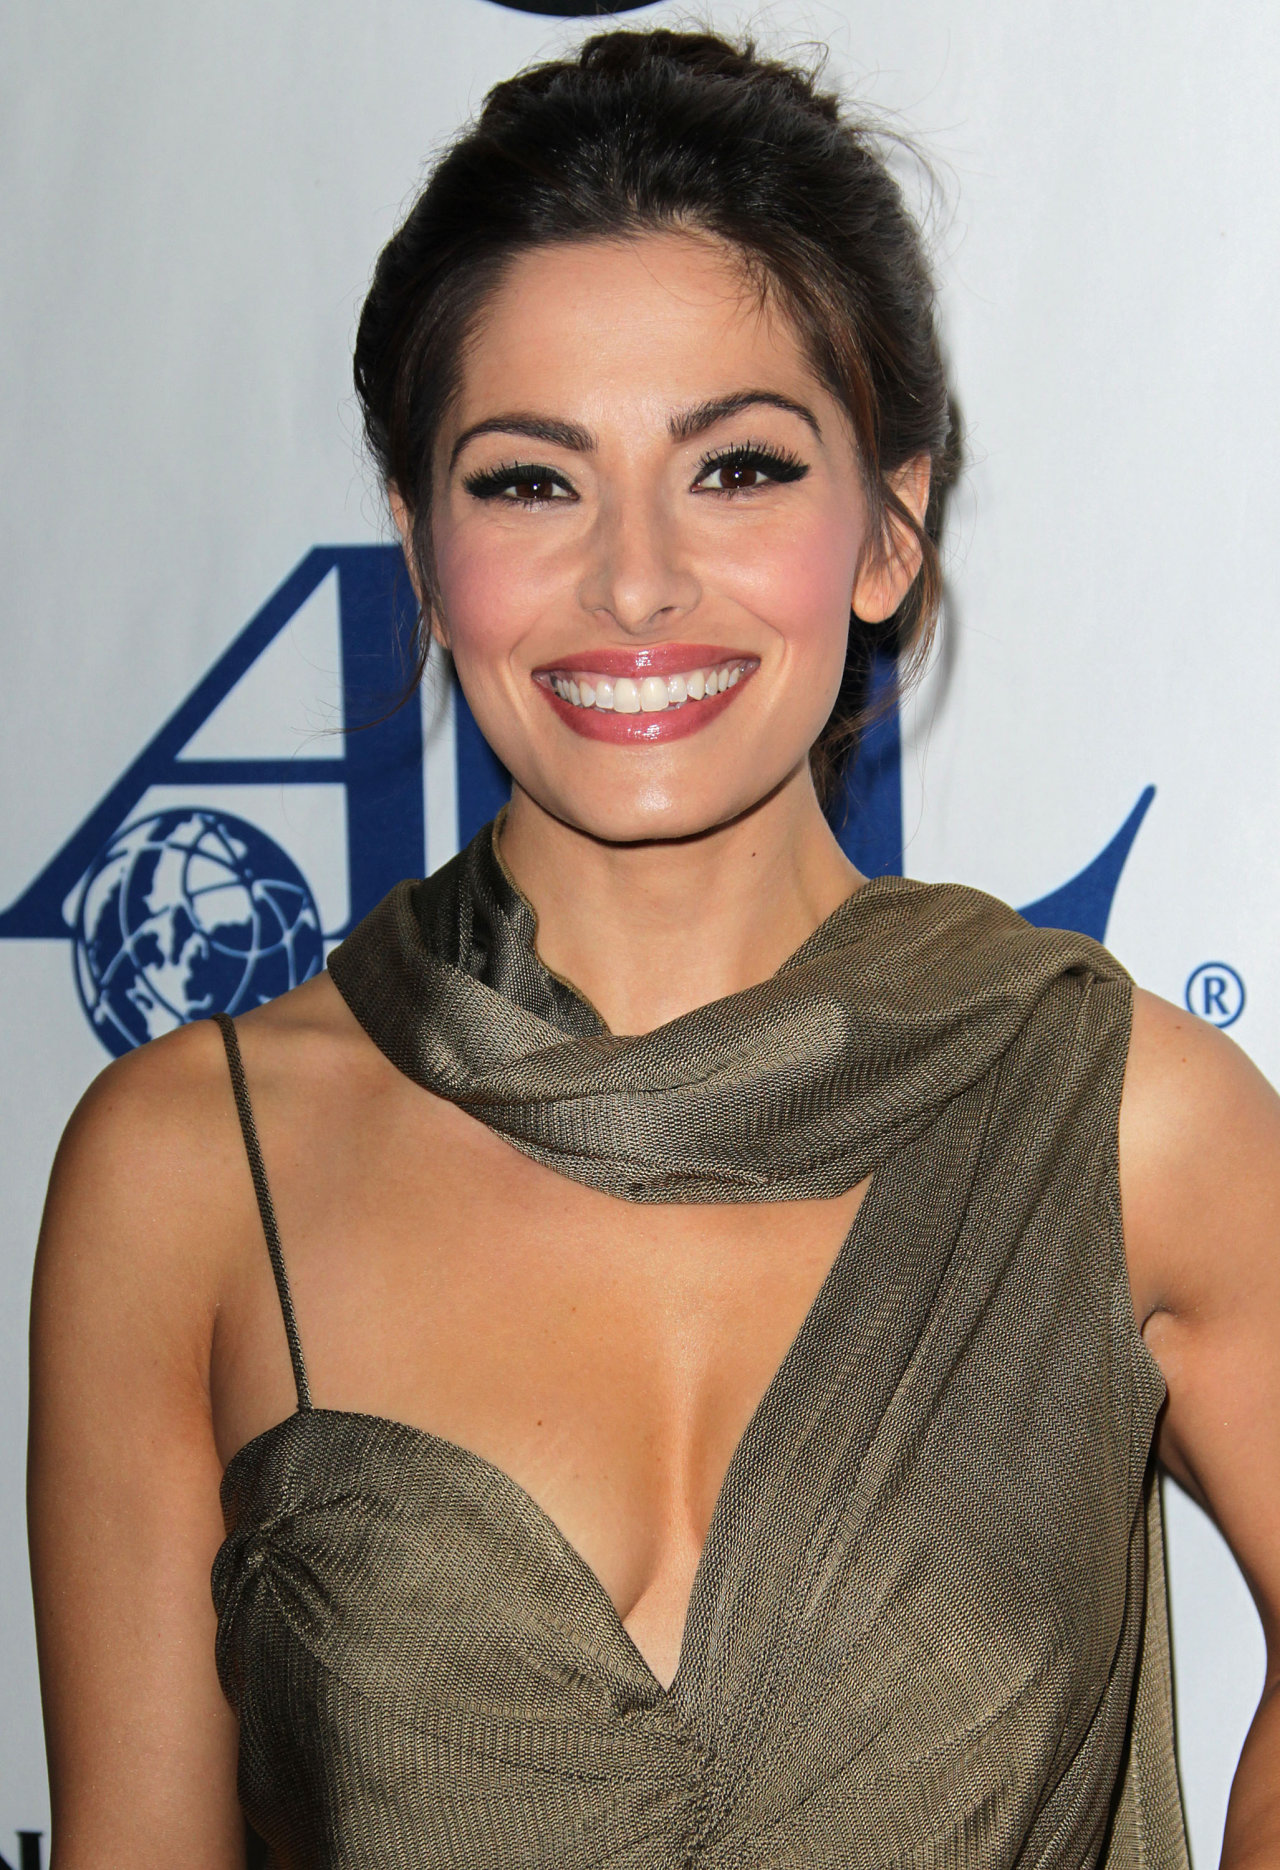 Sarah shahi photo gallery Sexy Women We Love - Beautiful Women That Are